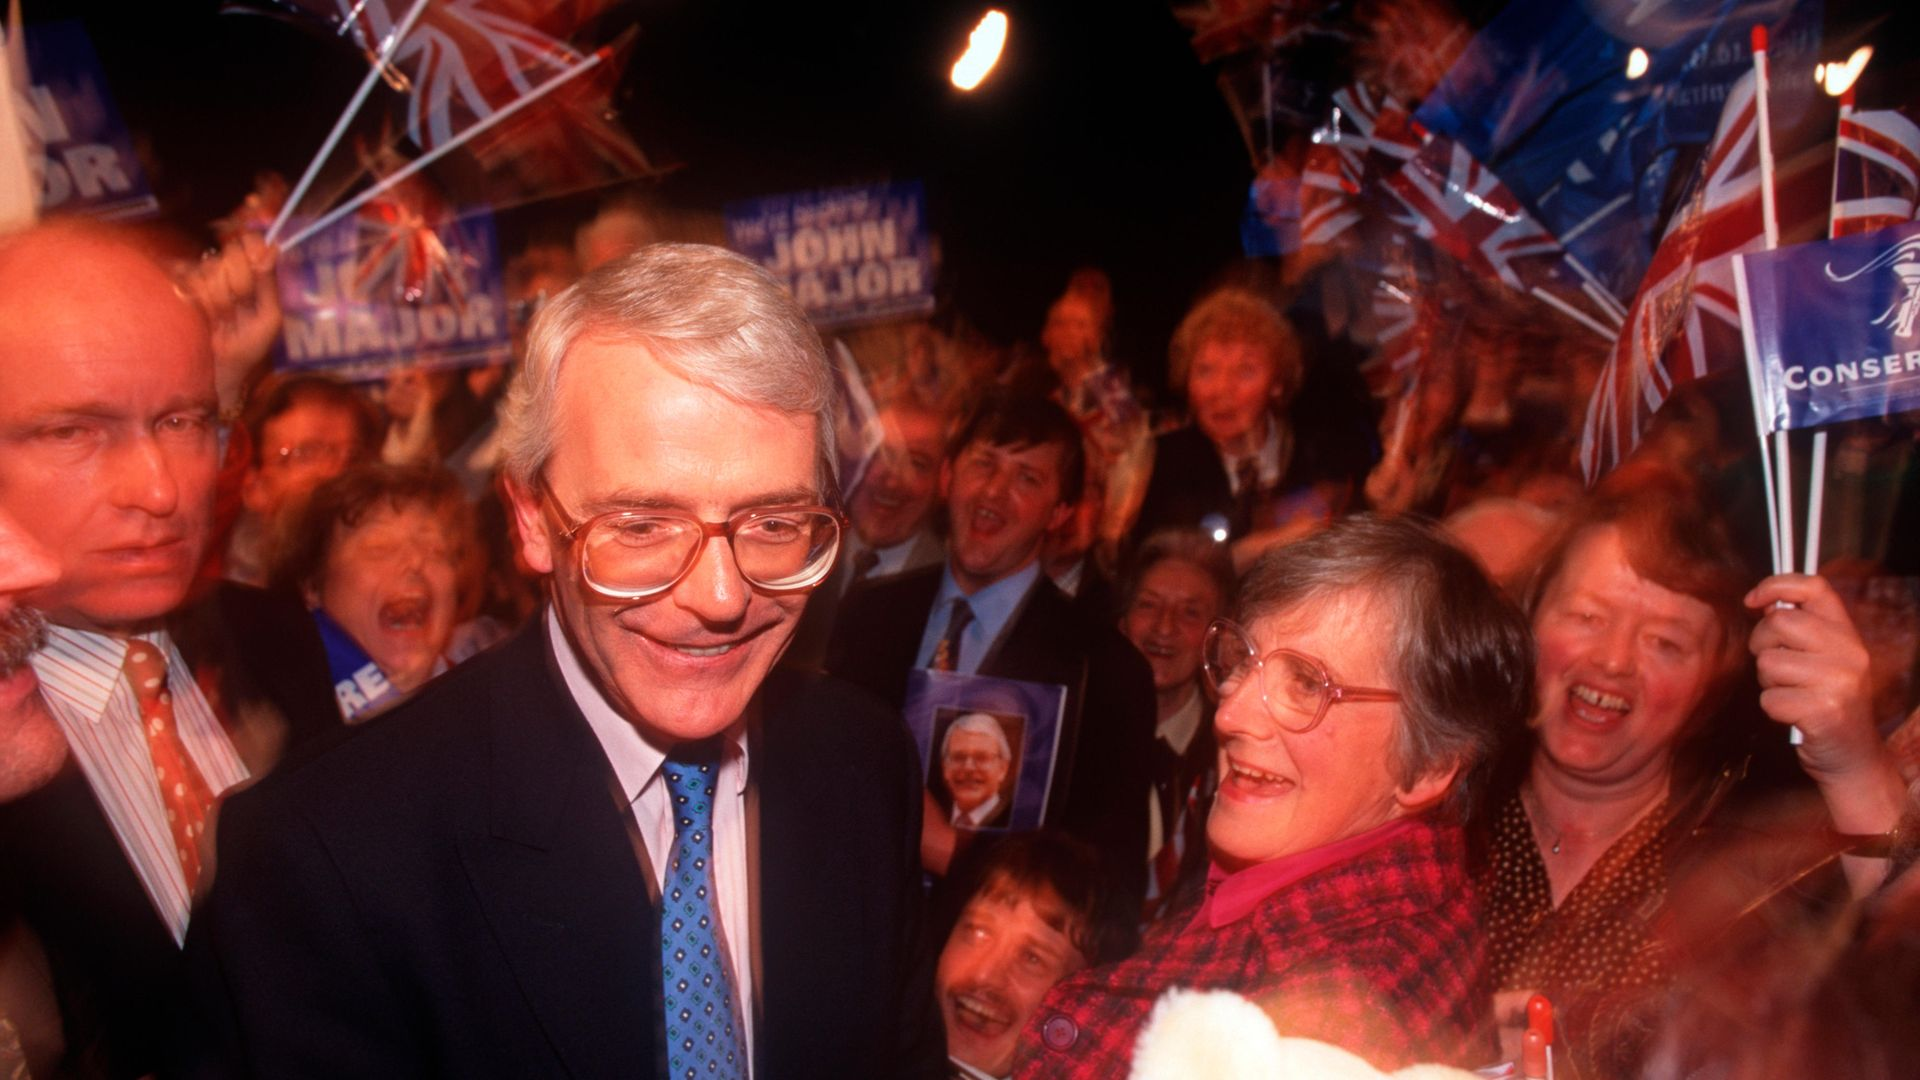 John Major launching the 1992 Conservative manifesto in Brighton - Credit: In Pictures via Getty Images